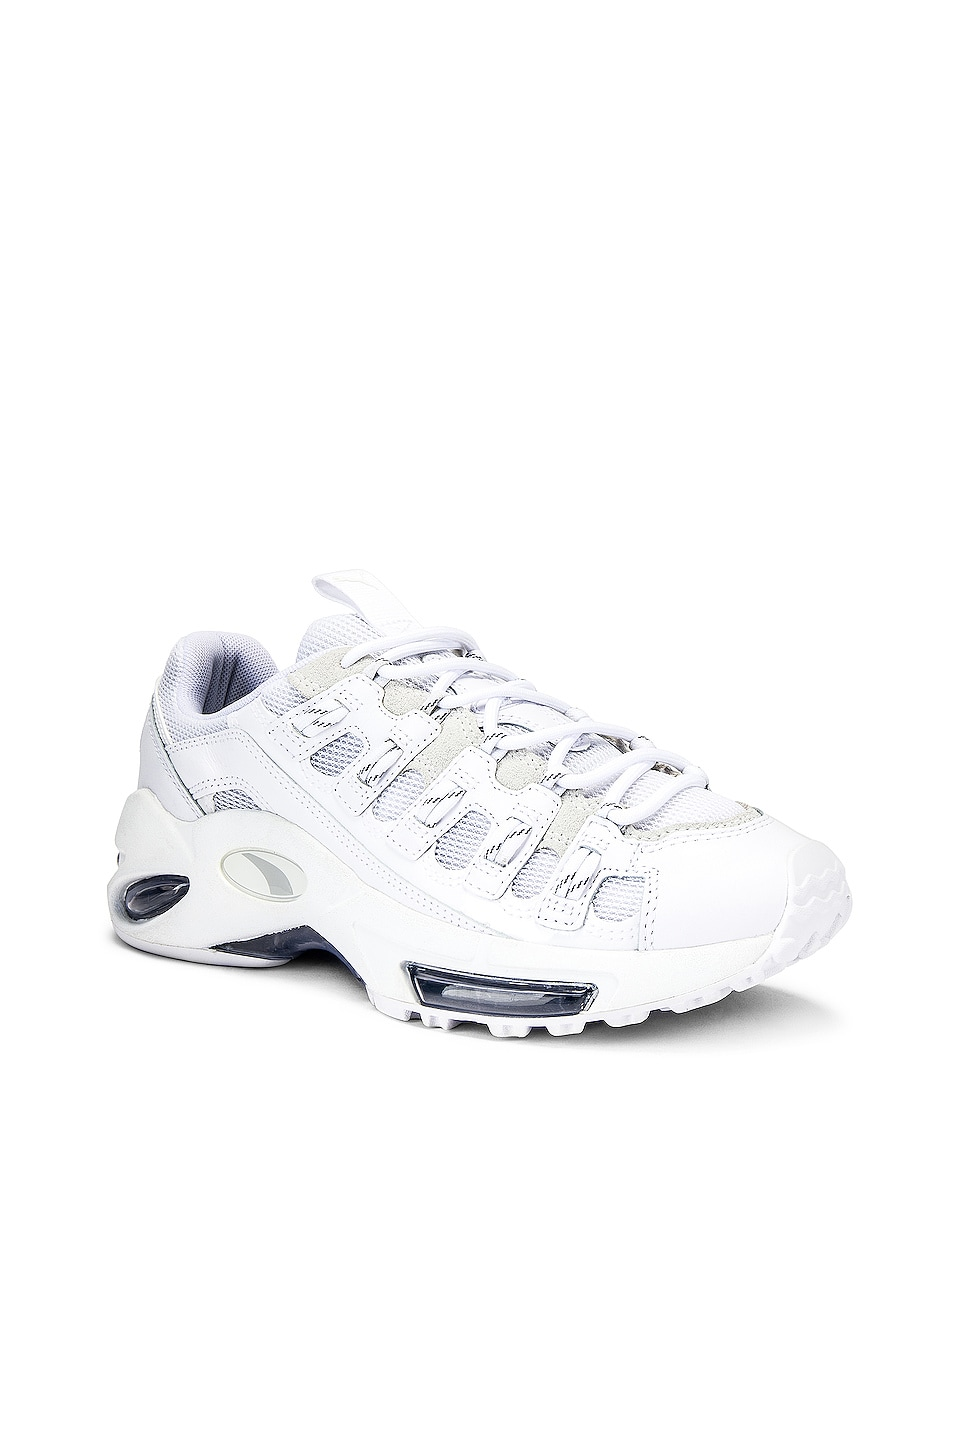 Puma Select Cell Endura Reflective in Puma White